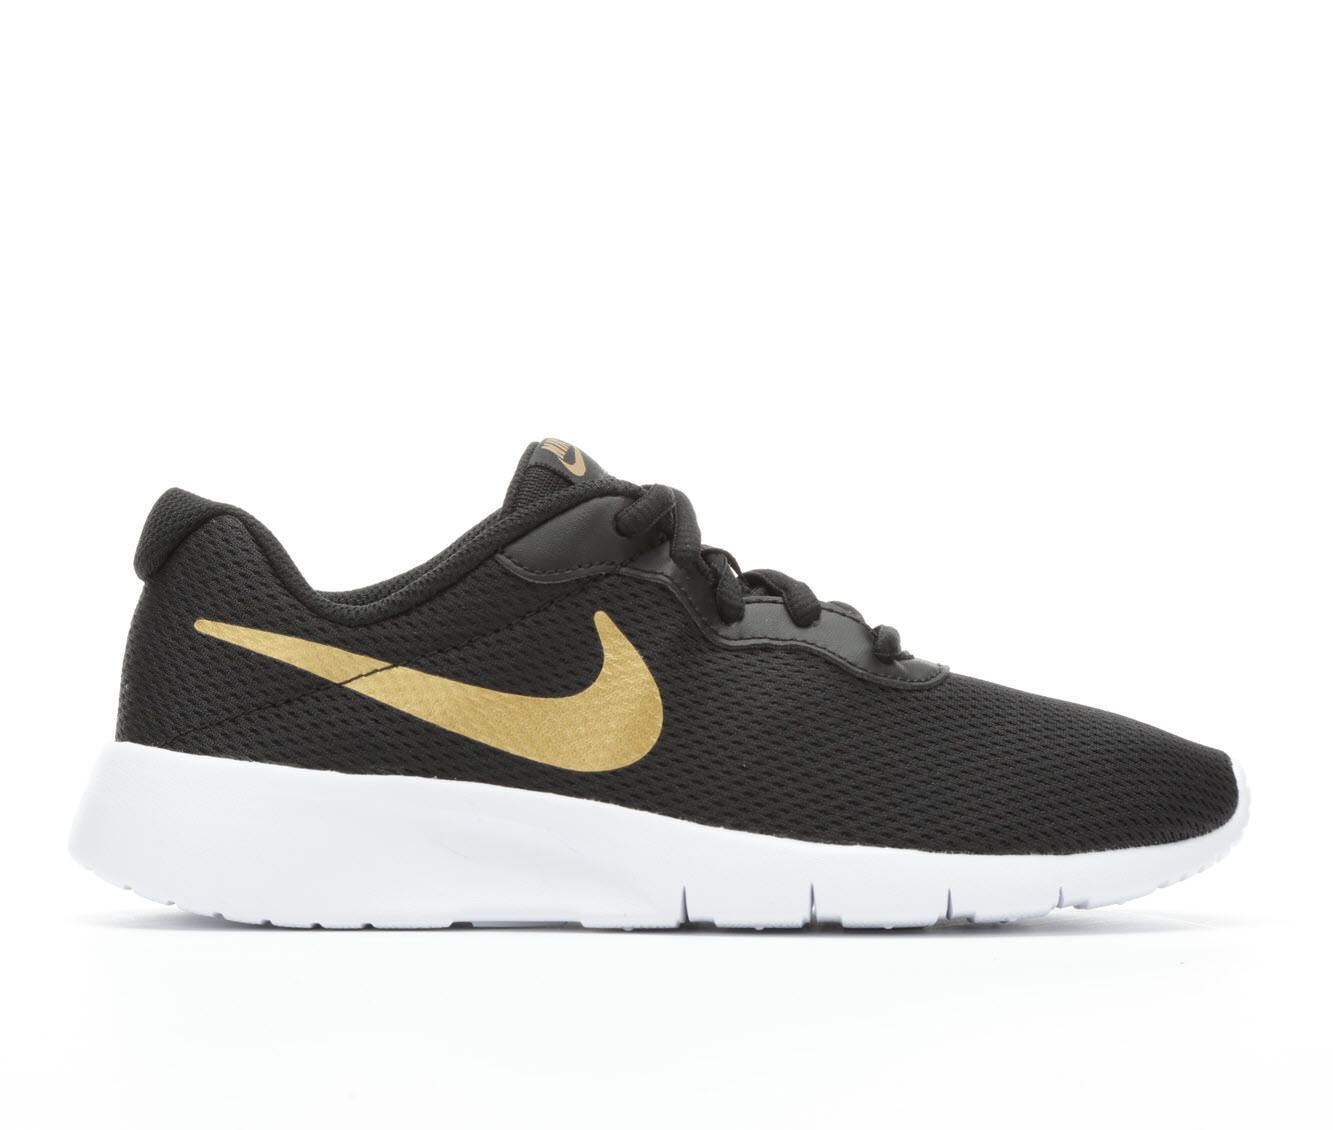 Images Kids Nike Tanjun 1053 Sneakers